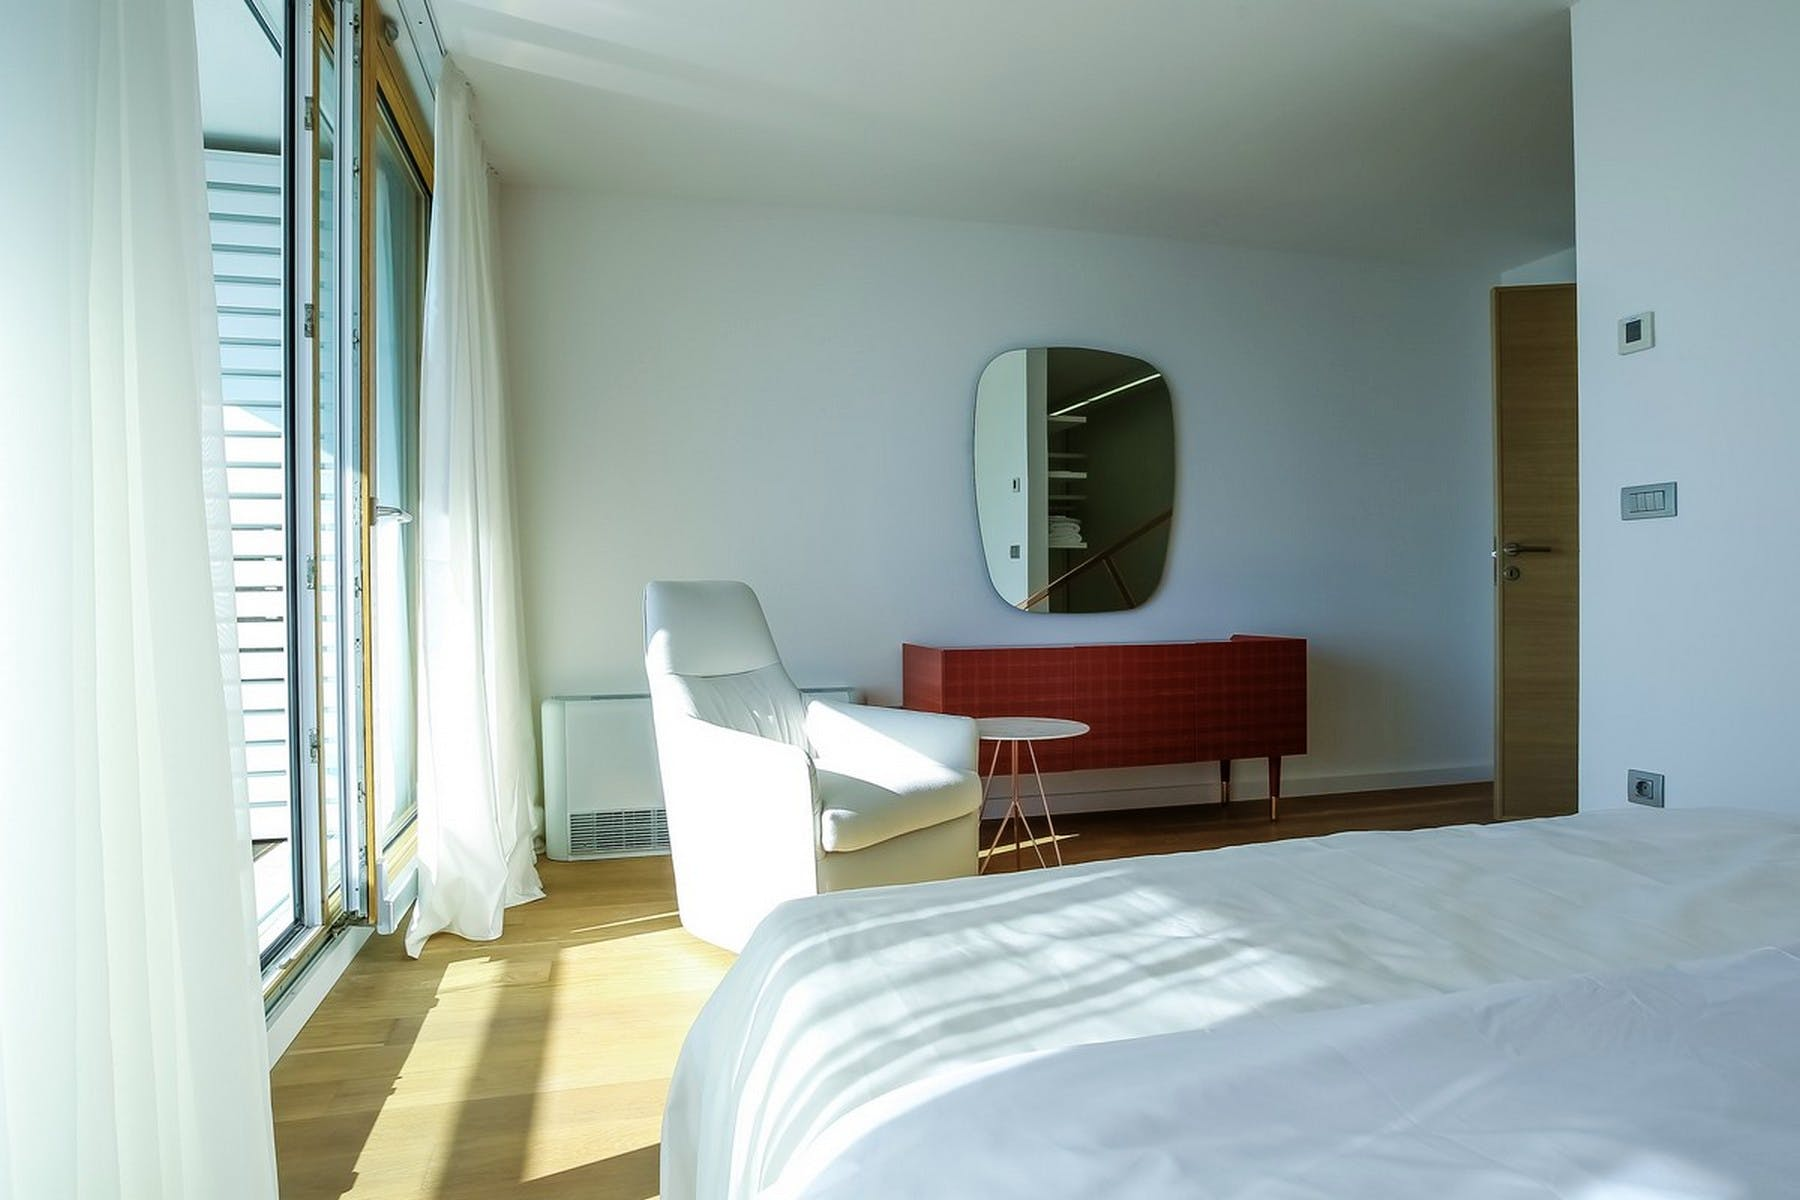 Lots of natural light in the rooms